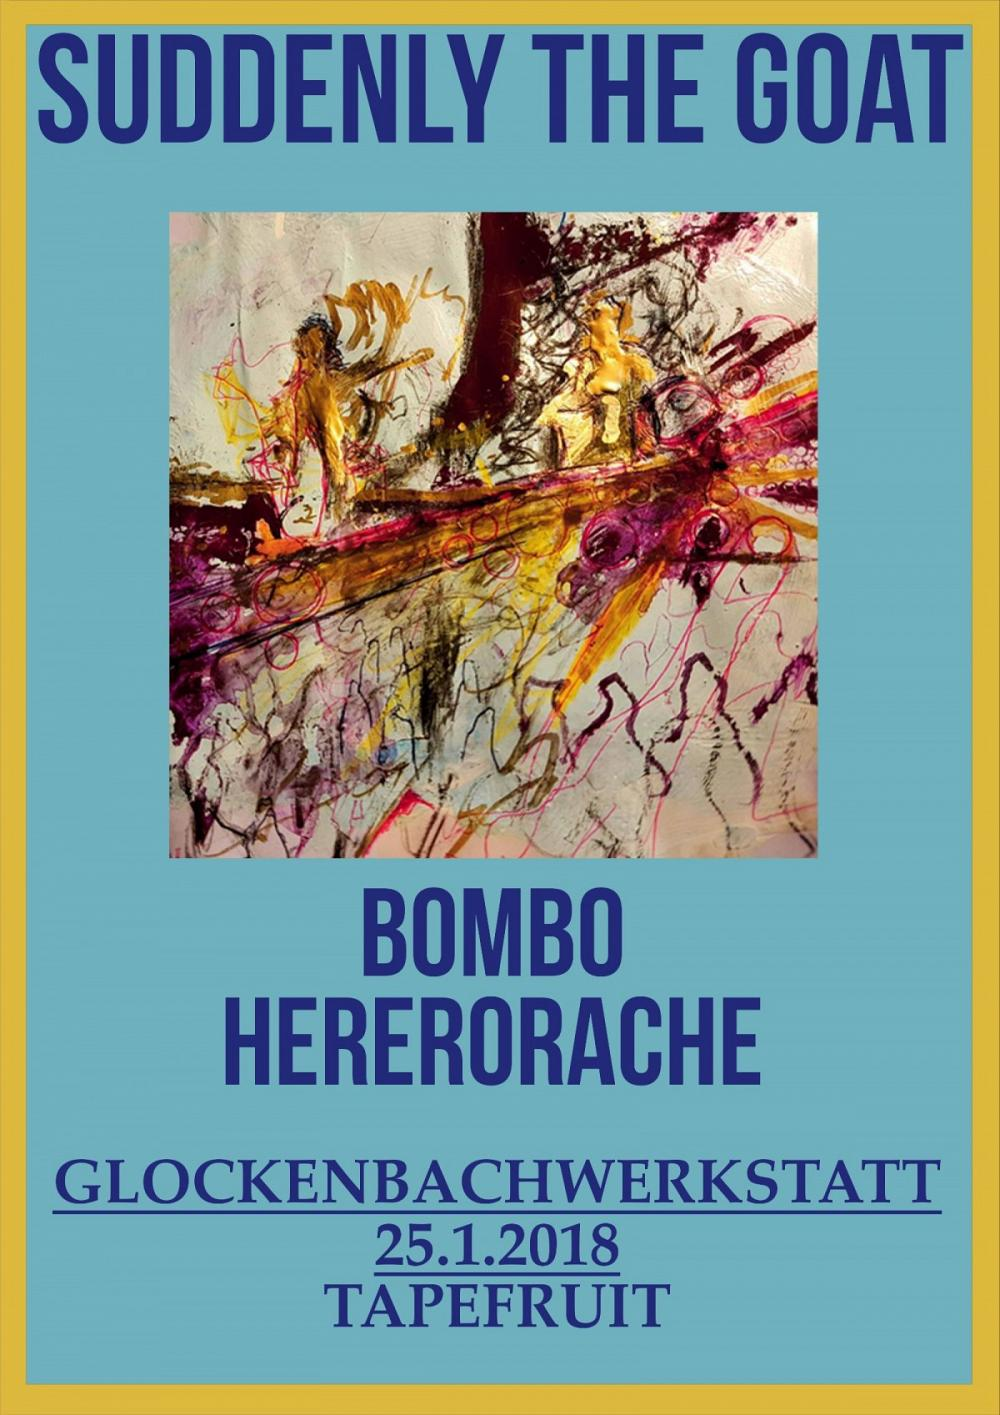 Tapefruit Konzert: Suddenly The Goat + Bombo + Hererorache | 25.01.2018 @ Glockenbachwerkstatt